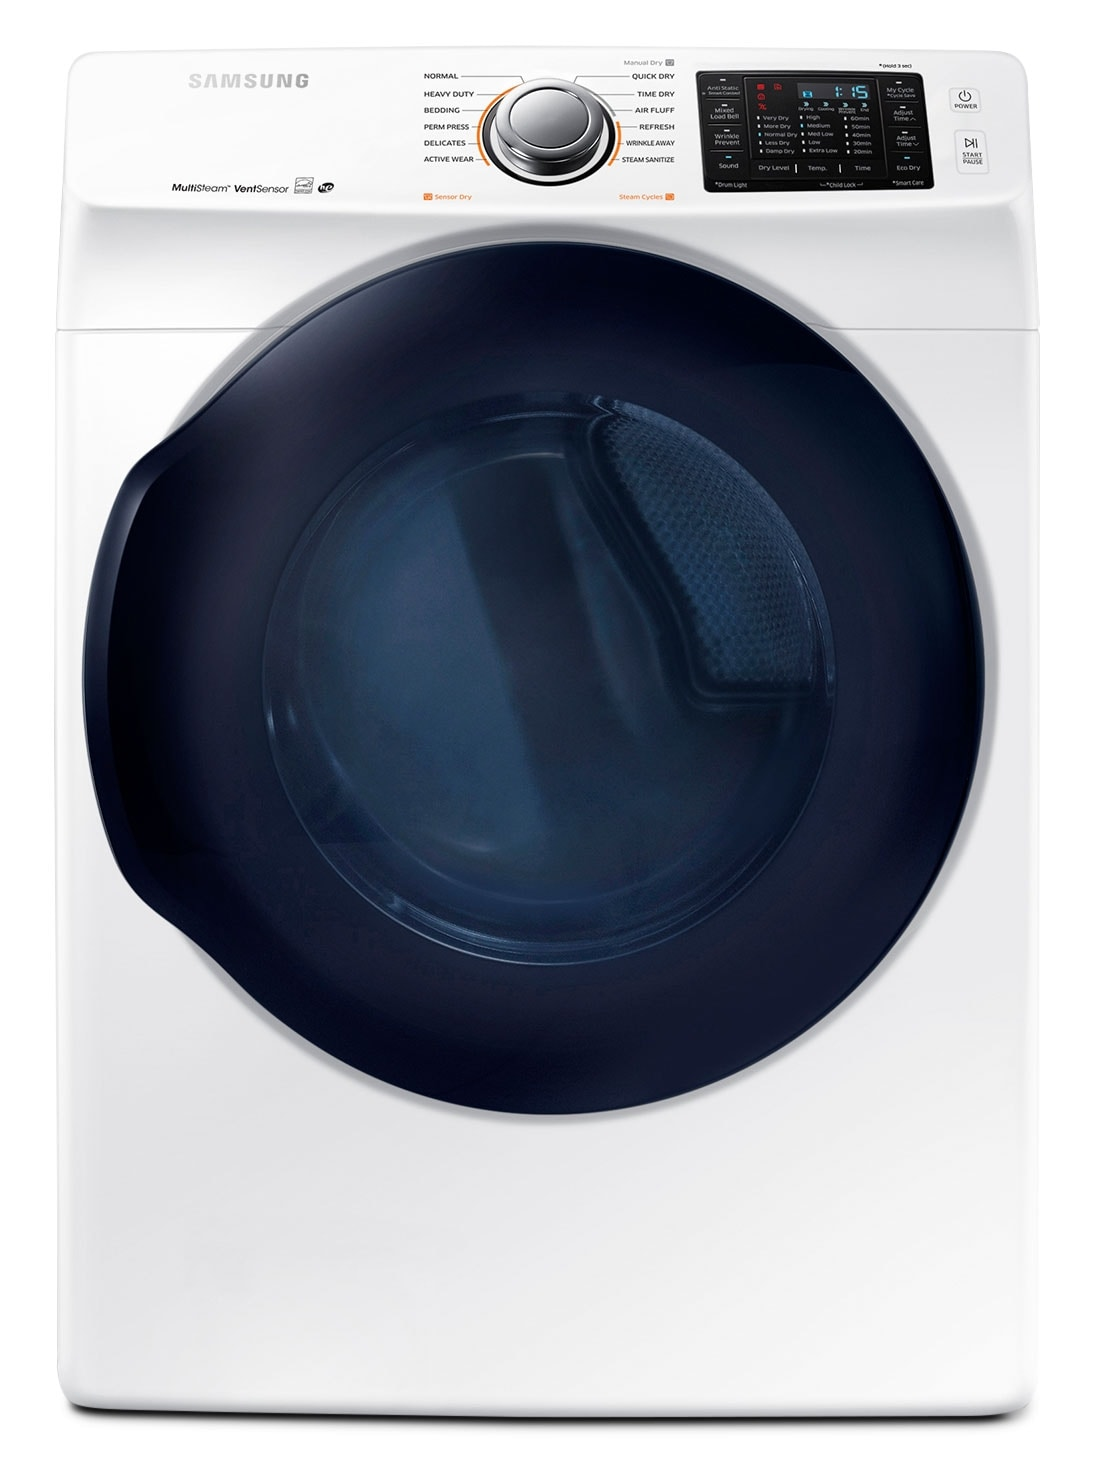 Samsung White Electric Dryer (7.5 Cu. Ft.) - DV45K6200EW/AC